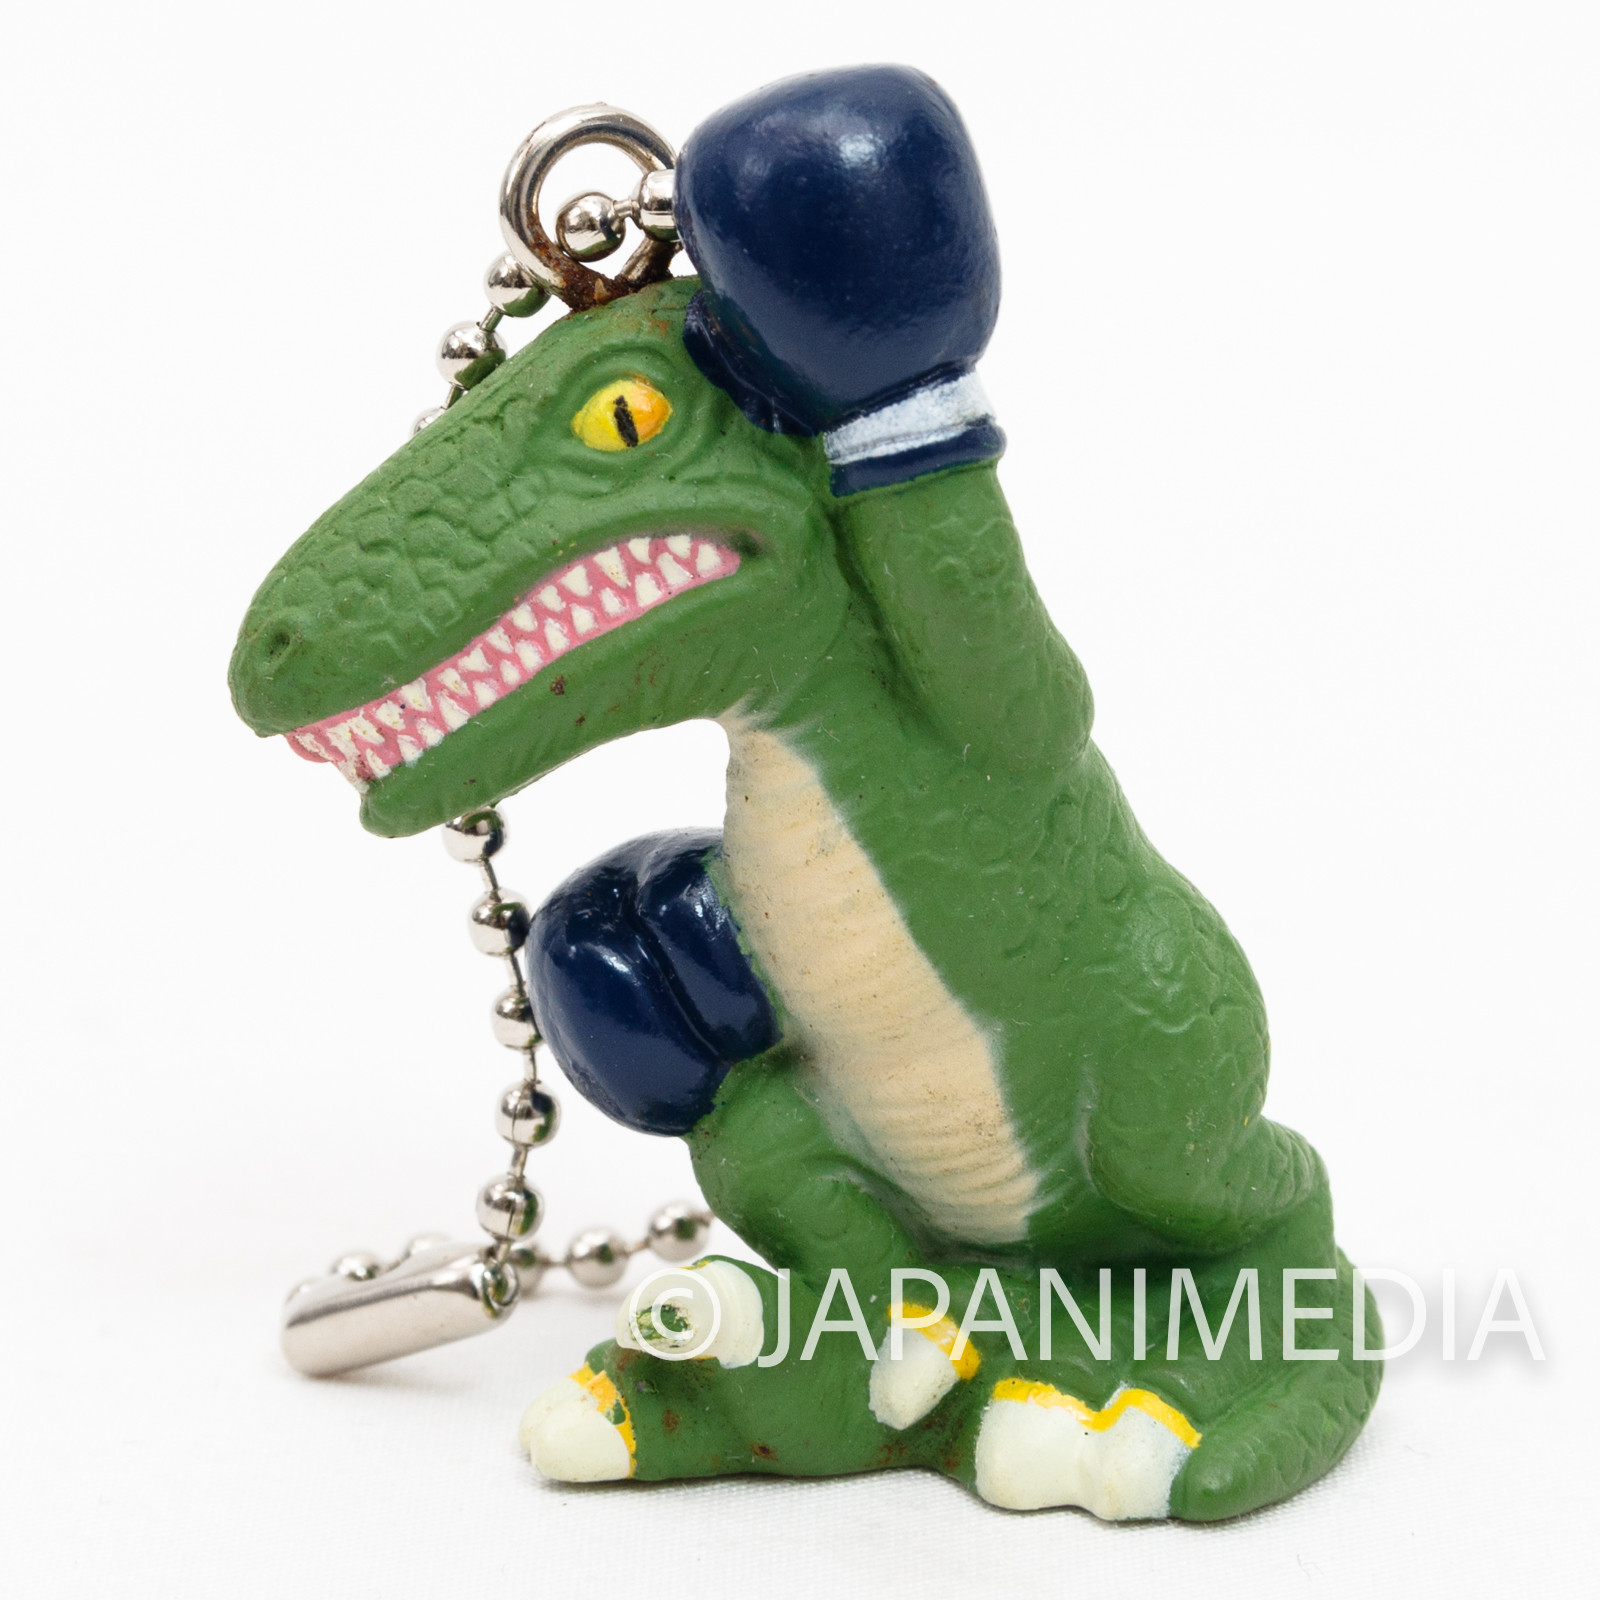 Retro Rare! Tekken Alex Crocodile Figure Ballchain Namco JAPAN GAME